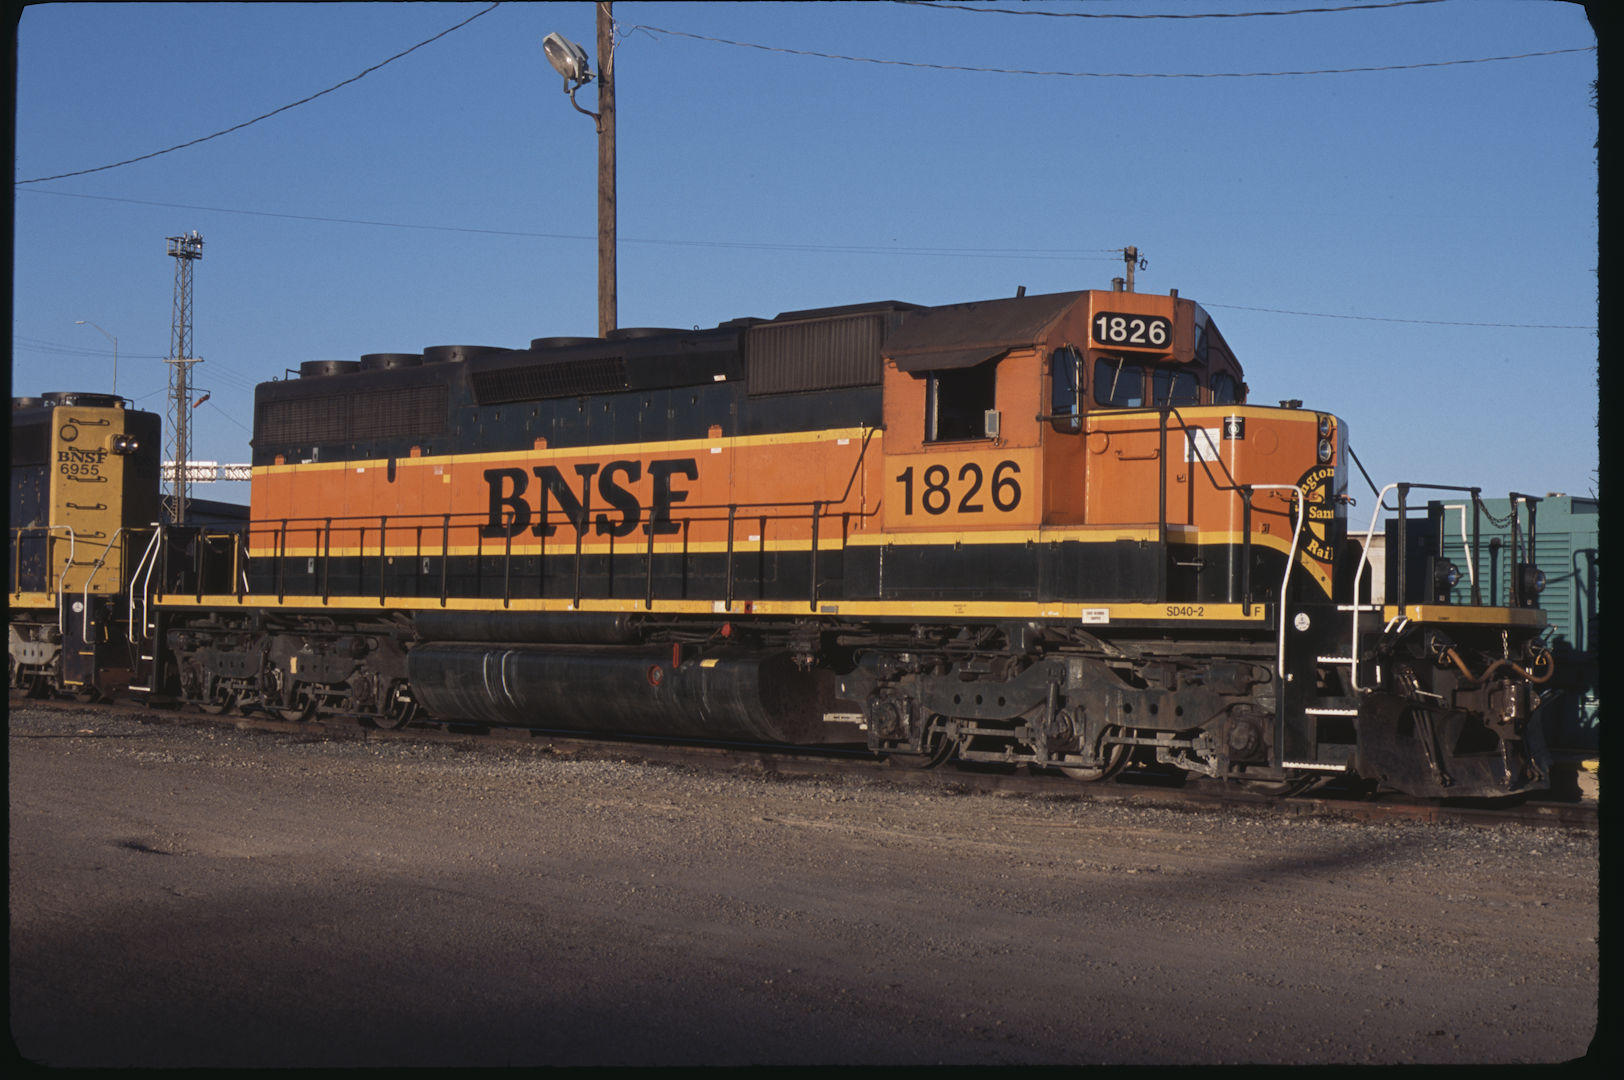 burlington northern santa fe railway The burlington northern and santa fe railway (bnsf) was formed in 1996 with the merger of the burlington northern and santa fe railroads bnsf is a major us carrier which currently boasts the second-largest freight network in north america.